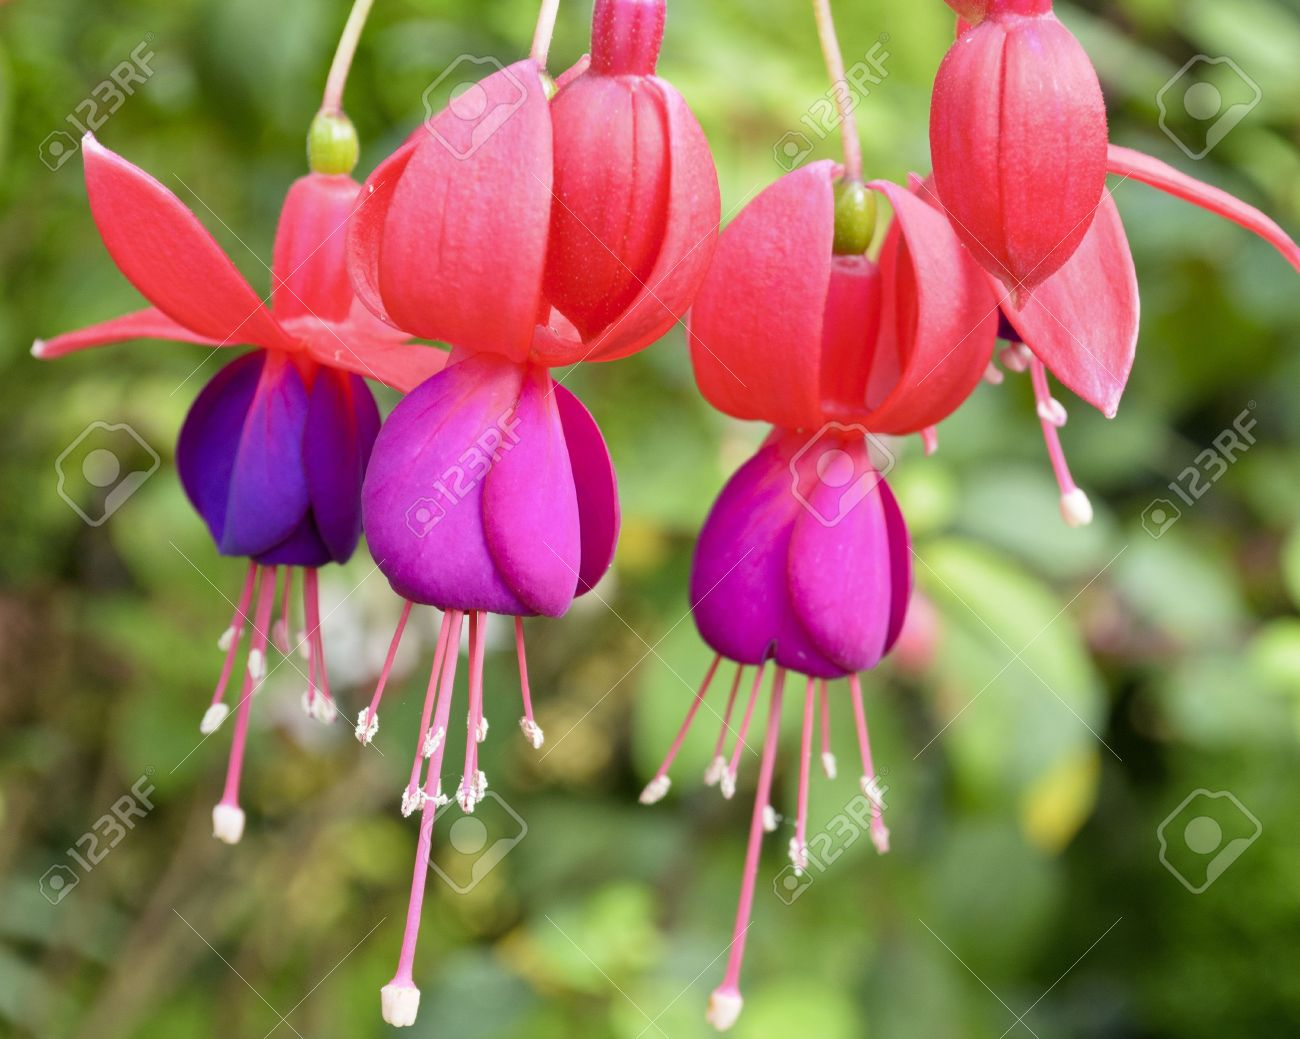 Beautiful exotic flowers that grow and bloom in the cold weather beautiful exotic flowers that grow and bloom in the cold weather or winter of thailand stock izmirmasajfo Images